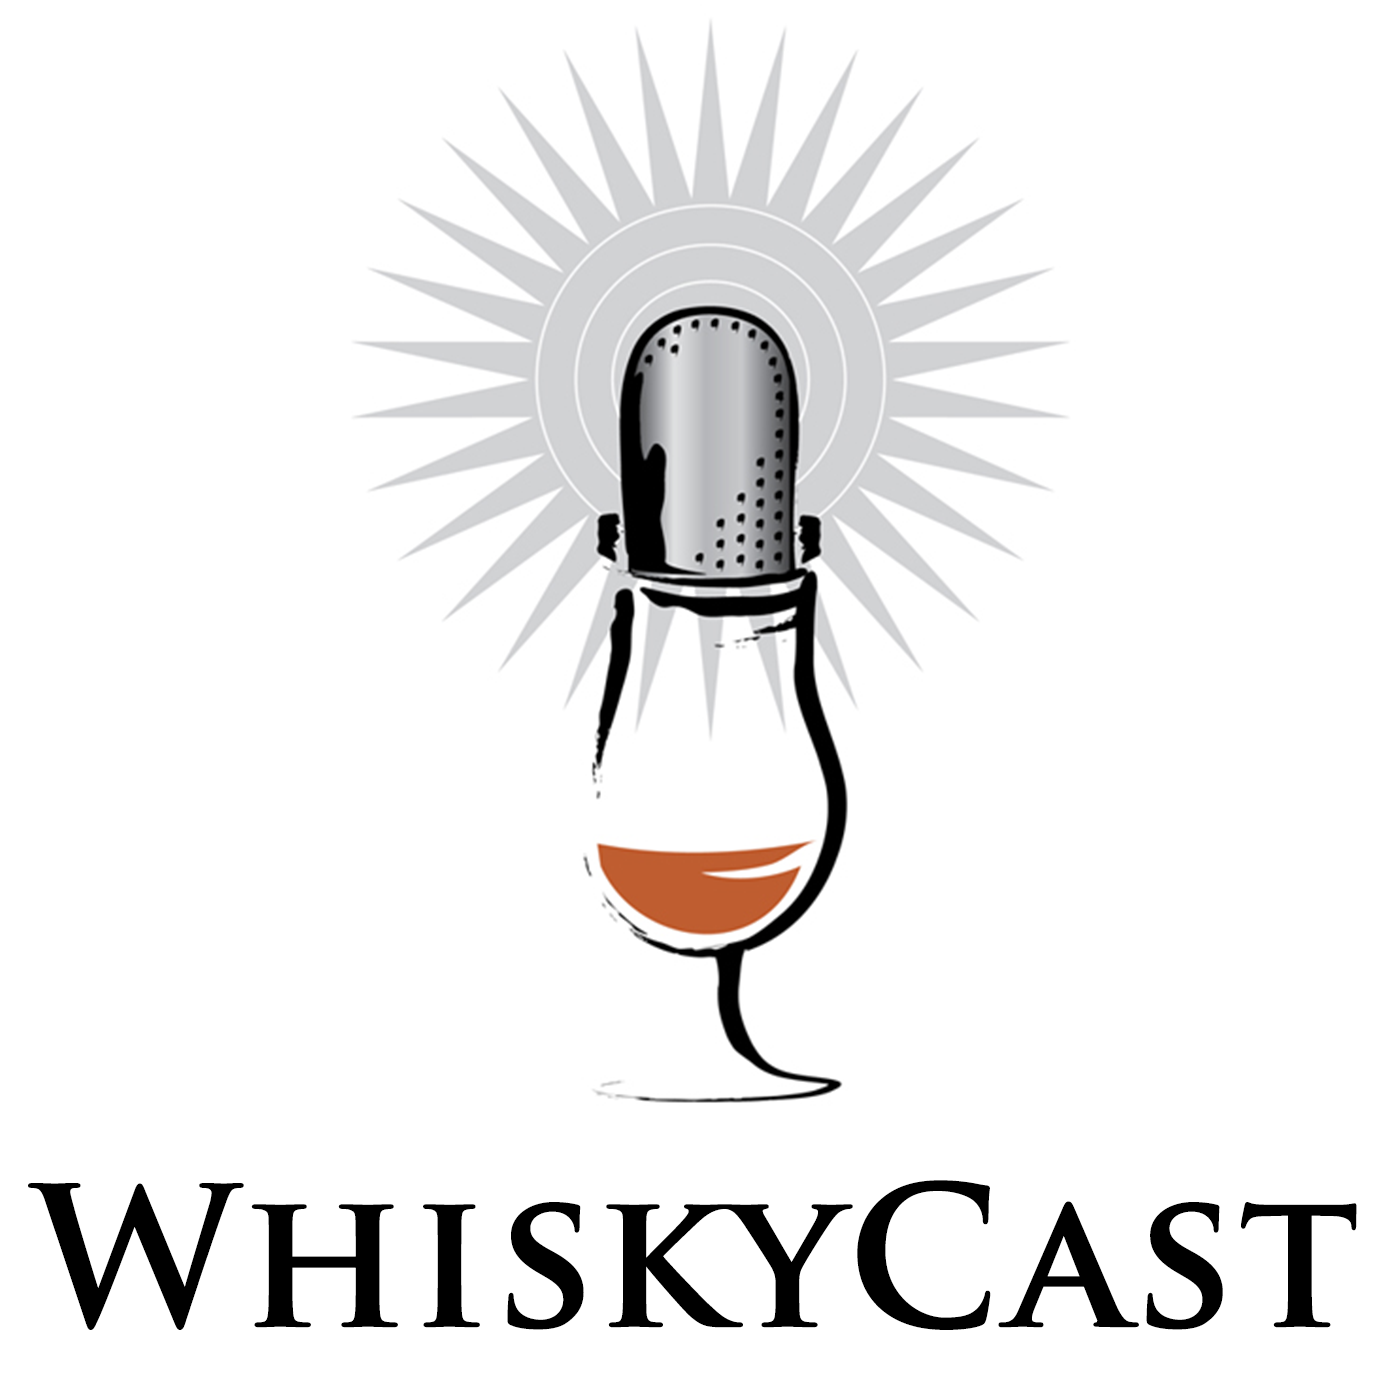 WhiskyCast Episode 440: August 31, 2013